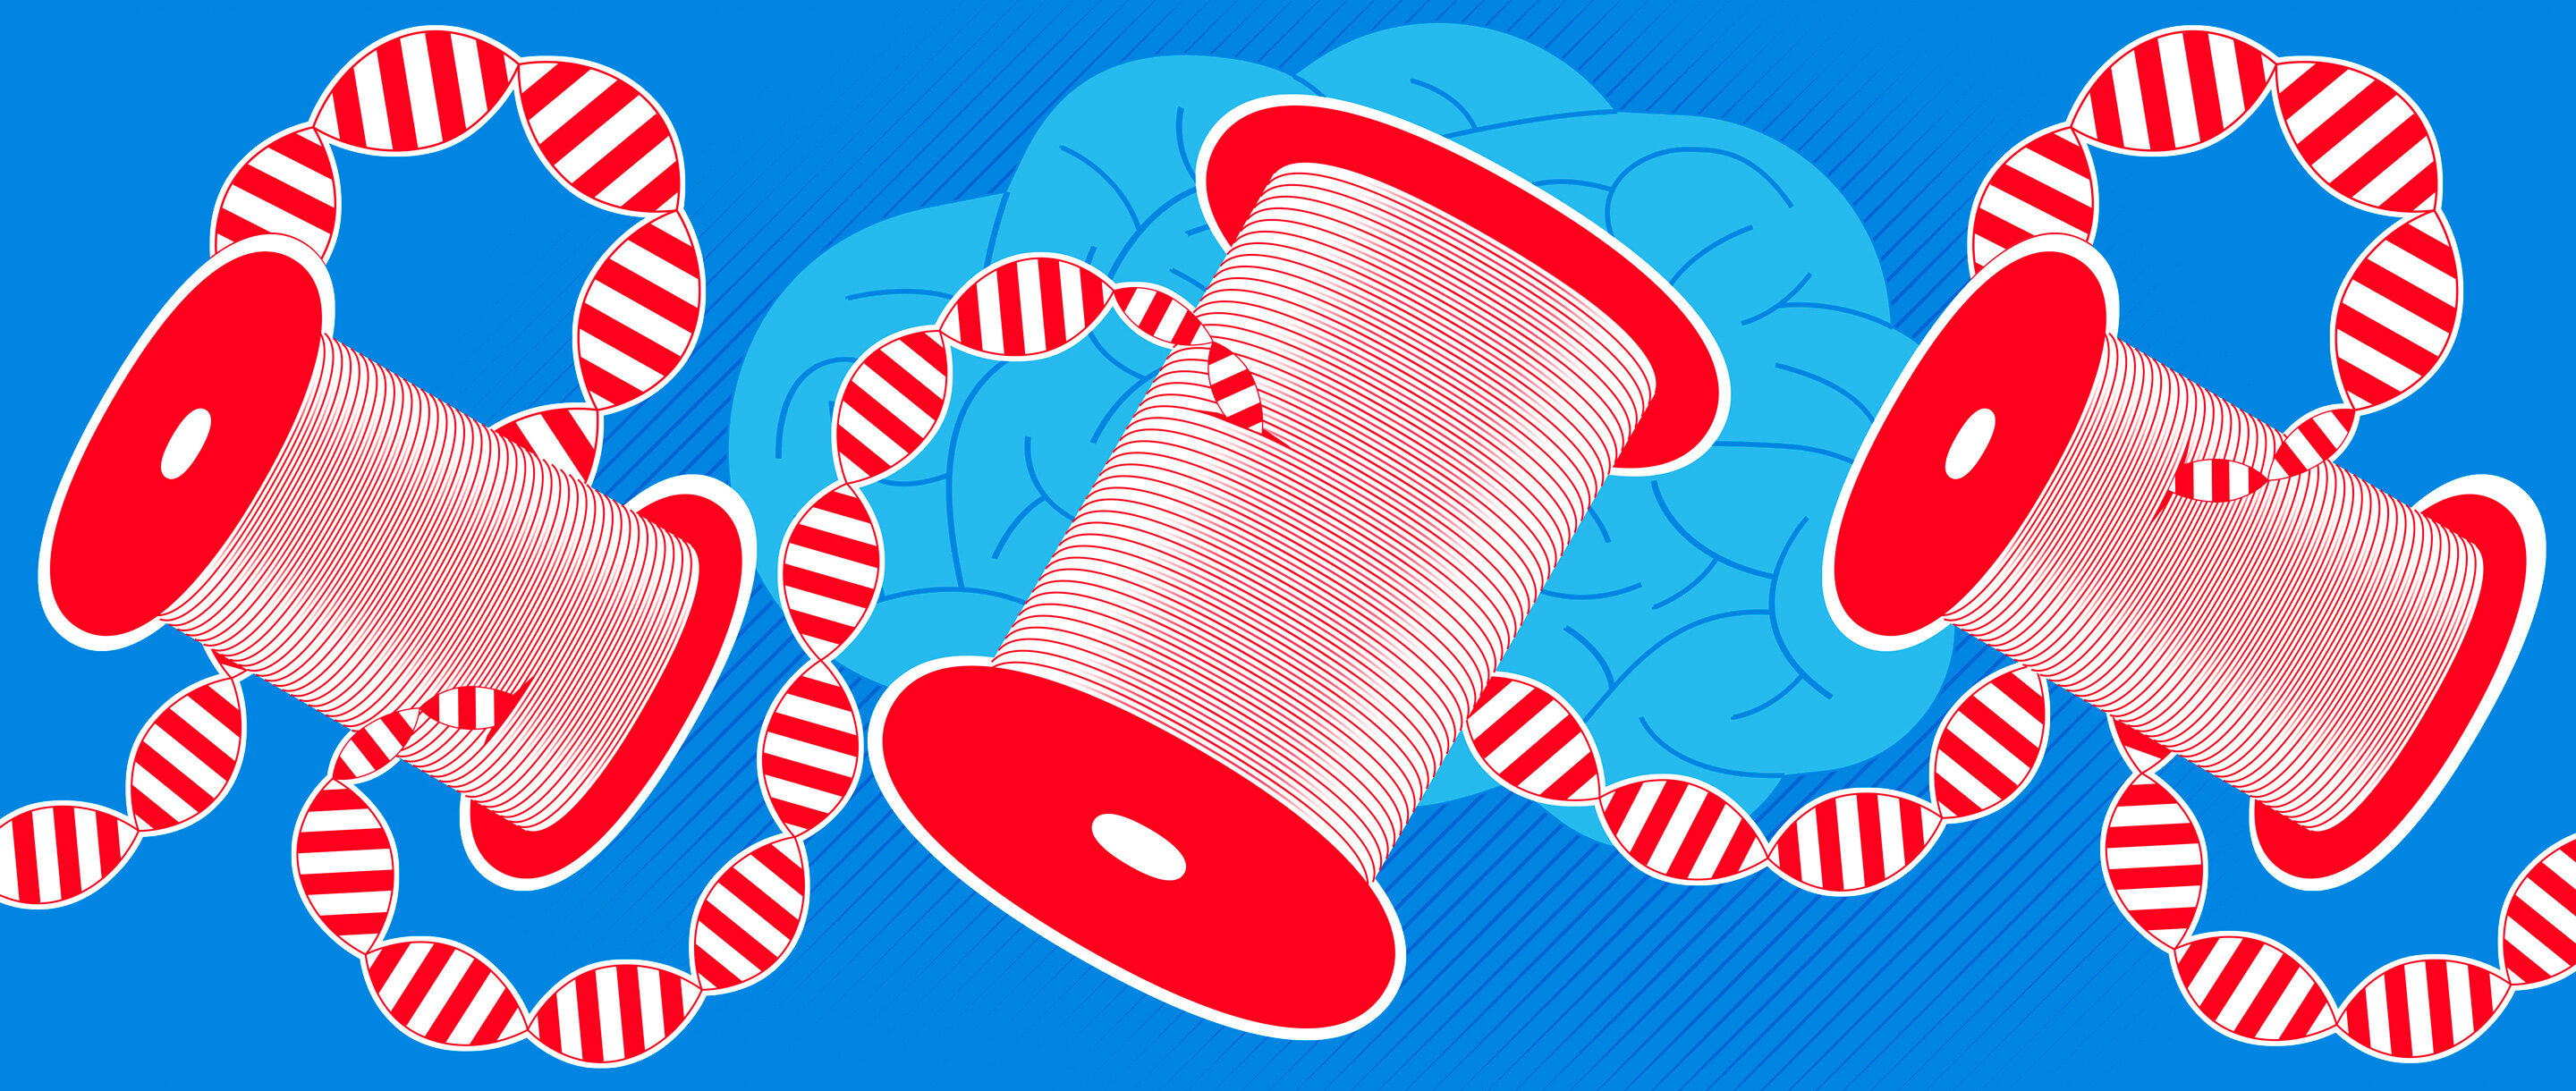 Illustration of red spools with strands of DNA as the thread, with a blue brain in the background.